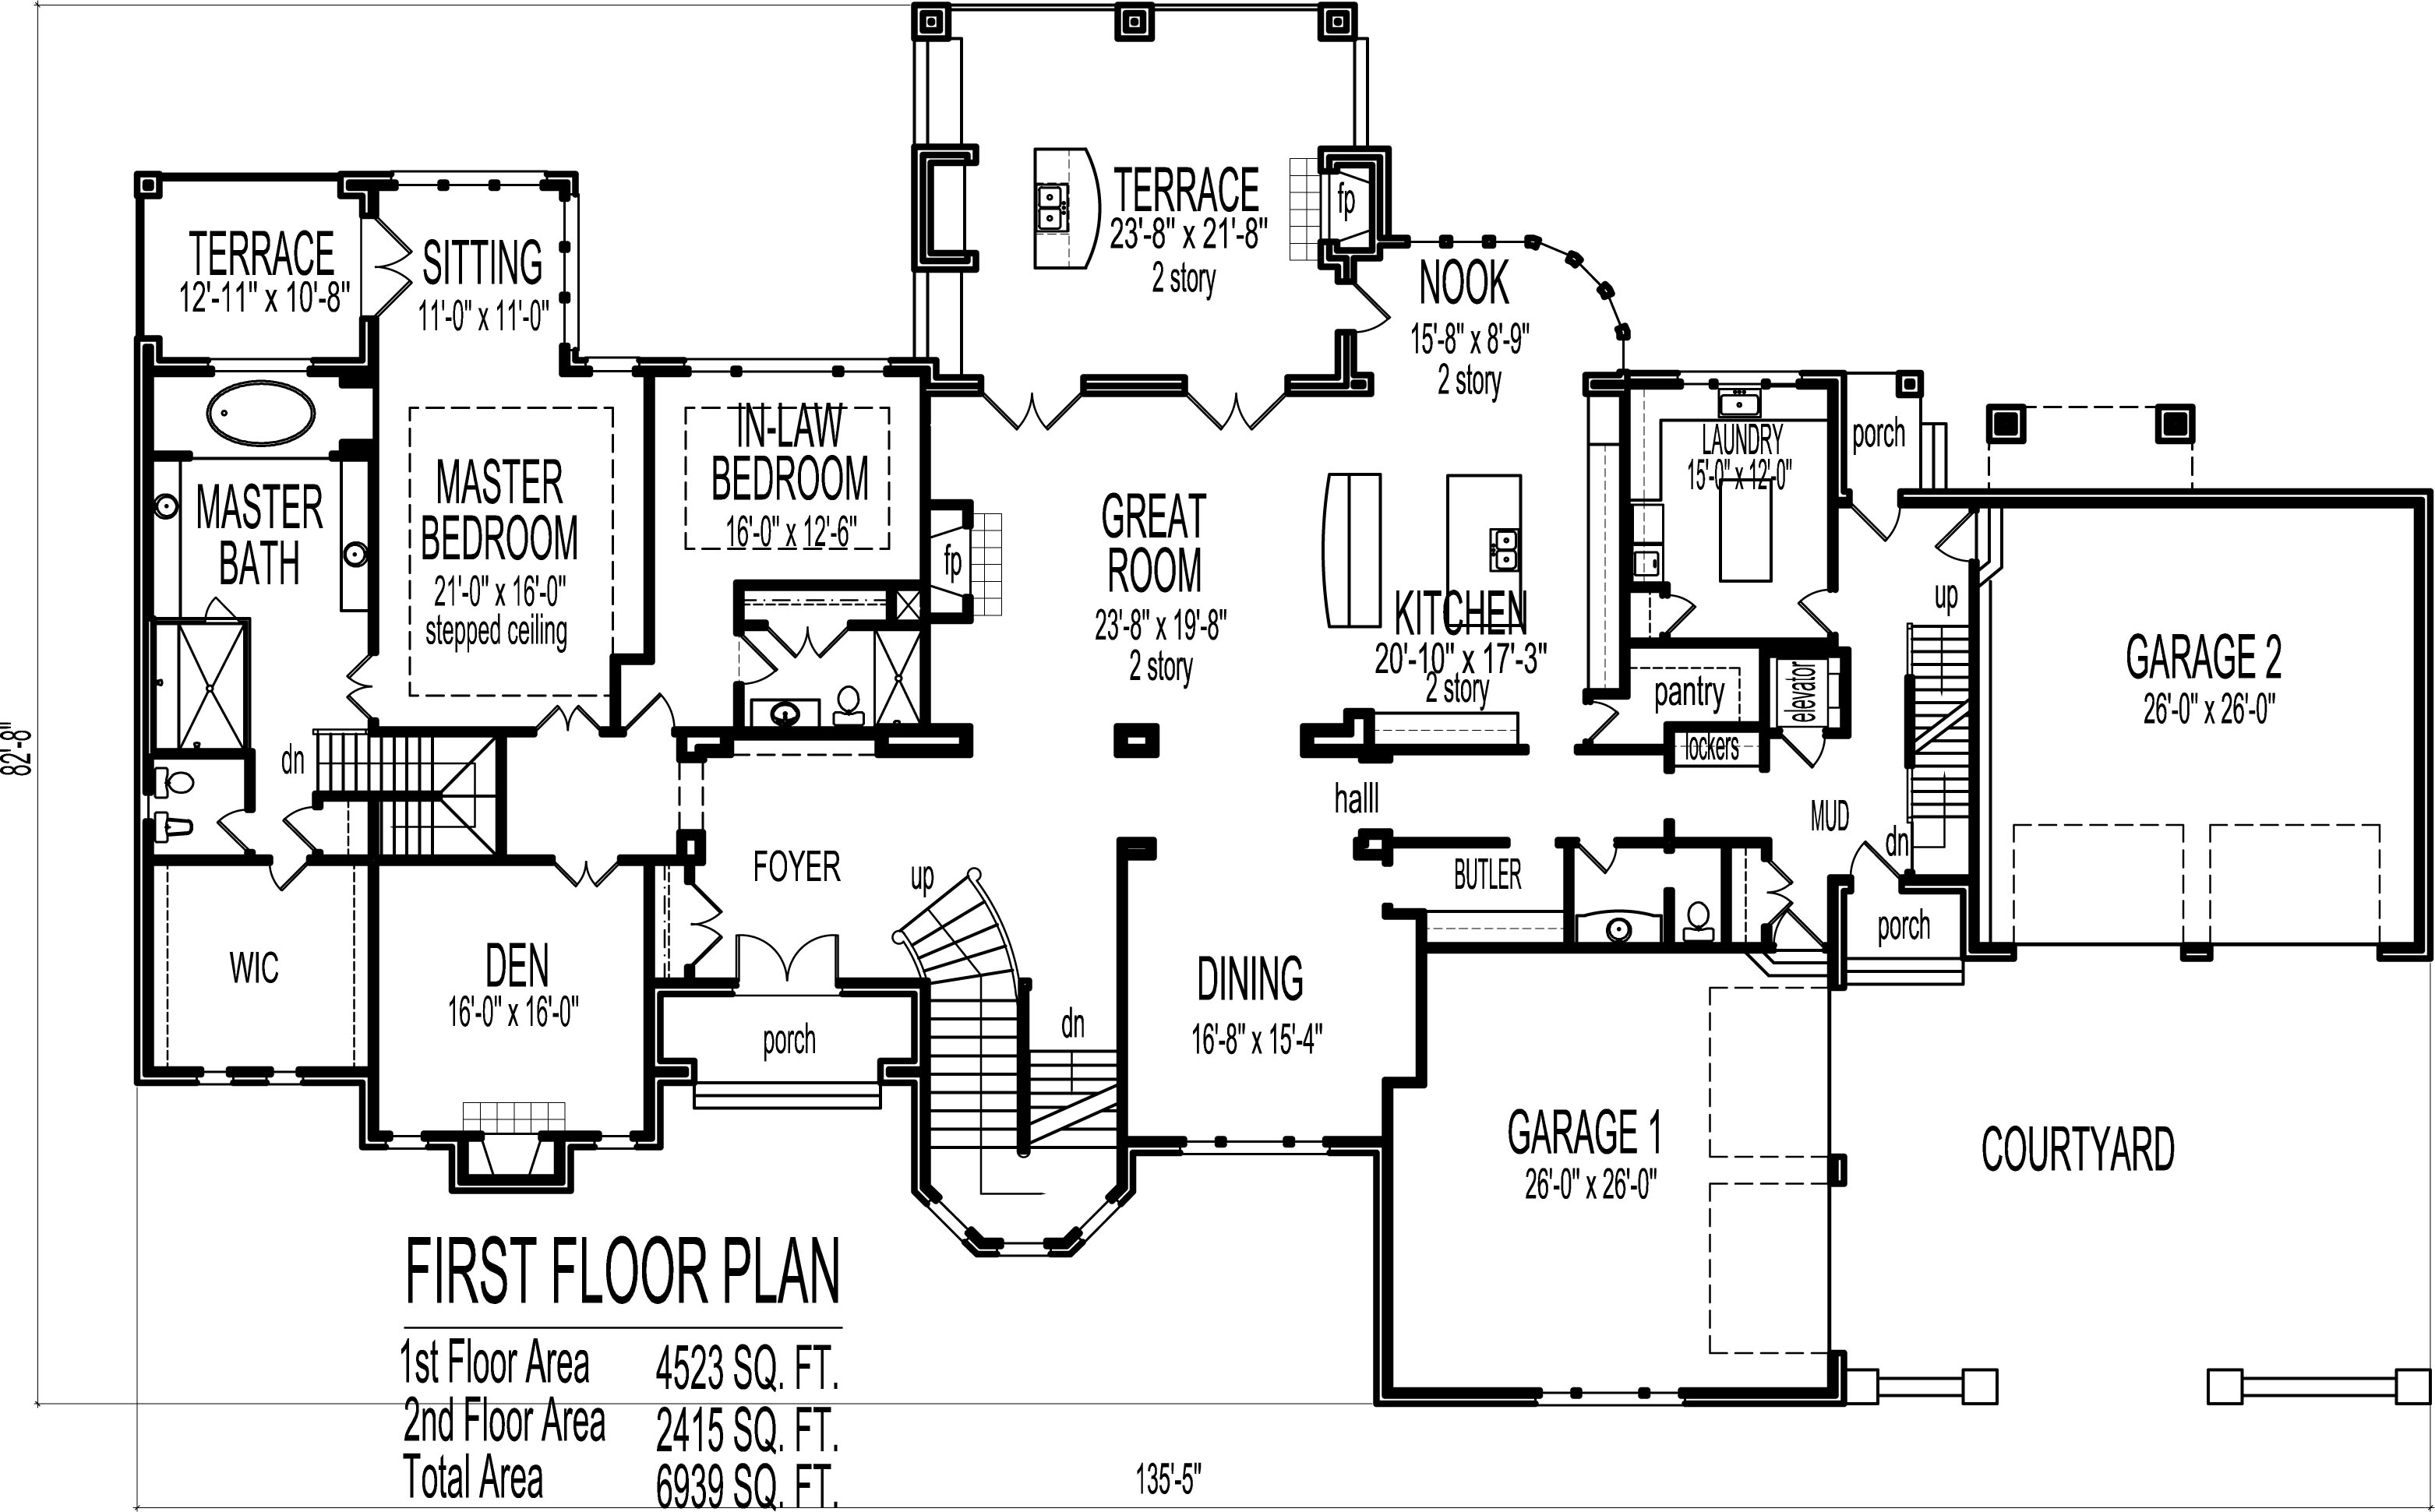 Dream House Floor Plans Blueprints 2 Story 5 Bedroom Large: large house floor plans